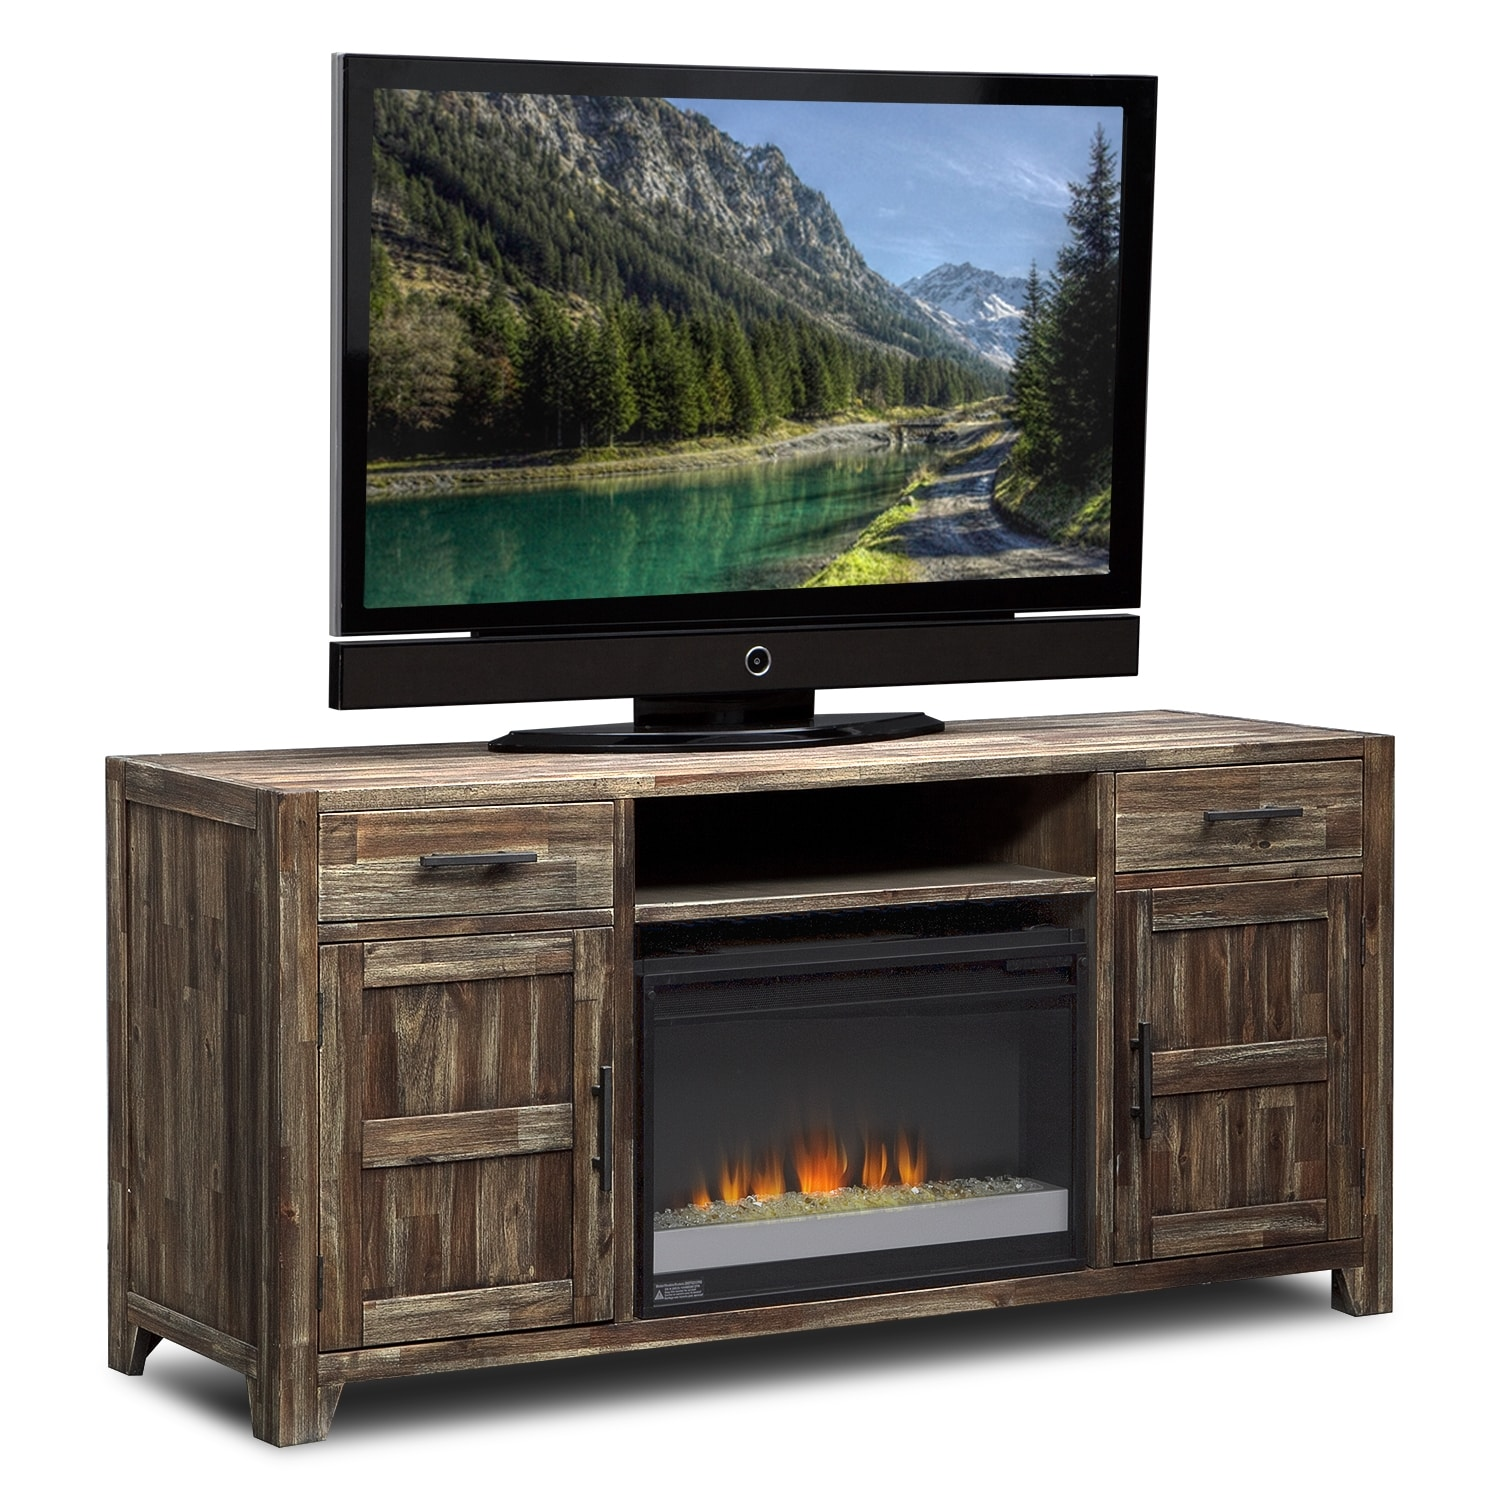 Brentwood Fireplace TV Stand with Contemporary Insert - Medium Brown